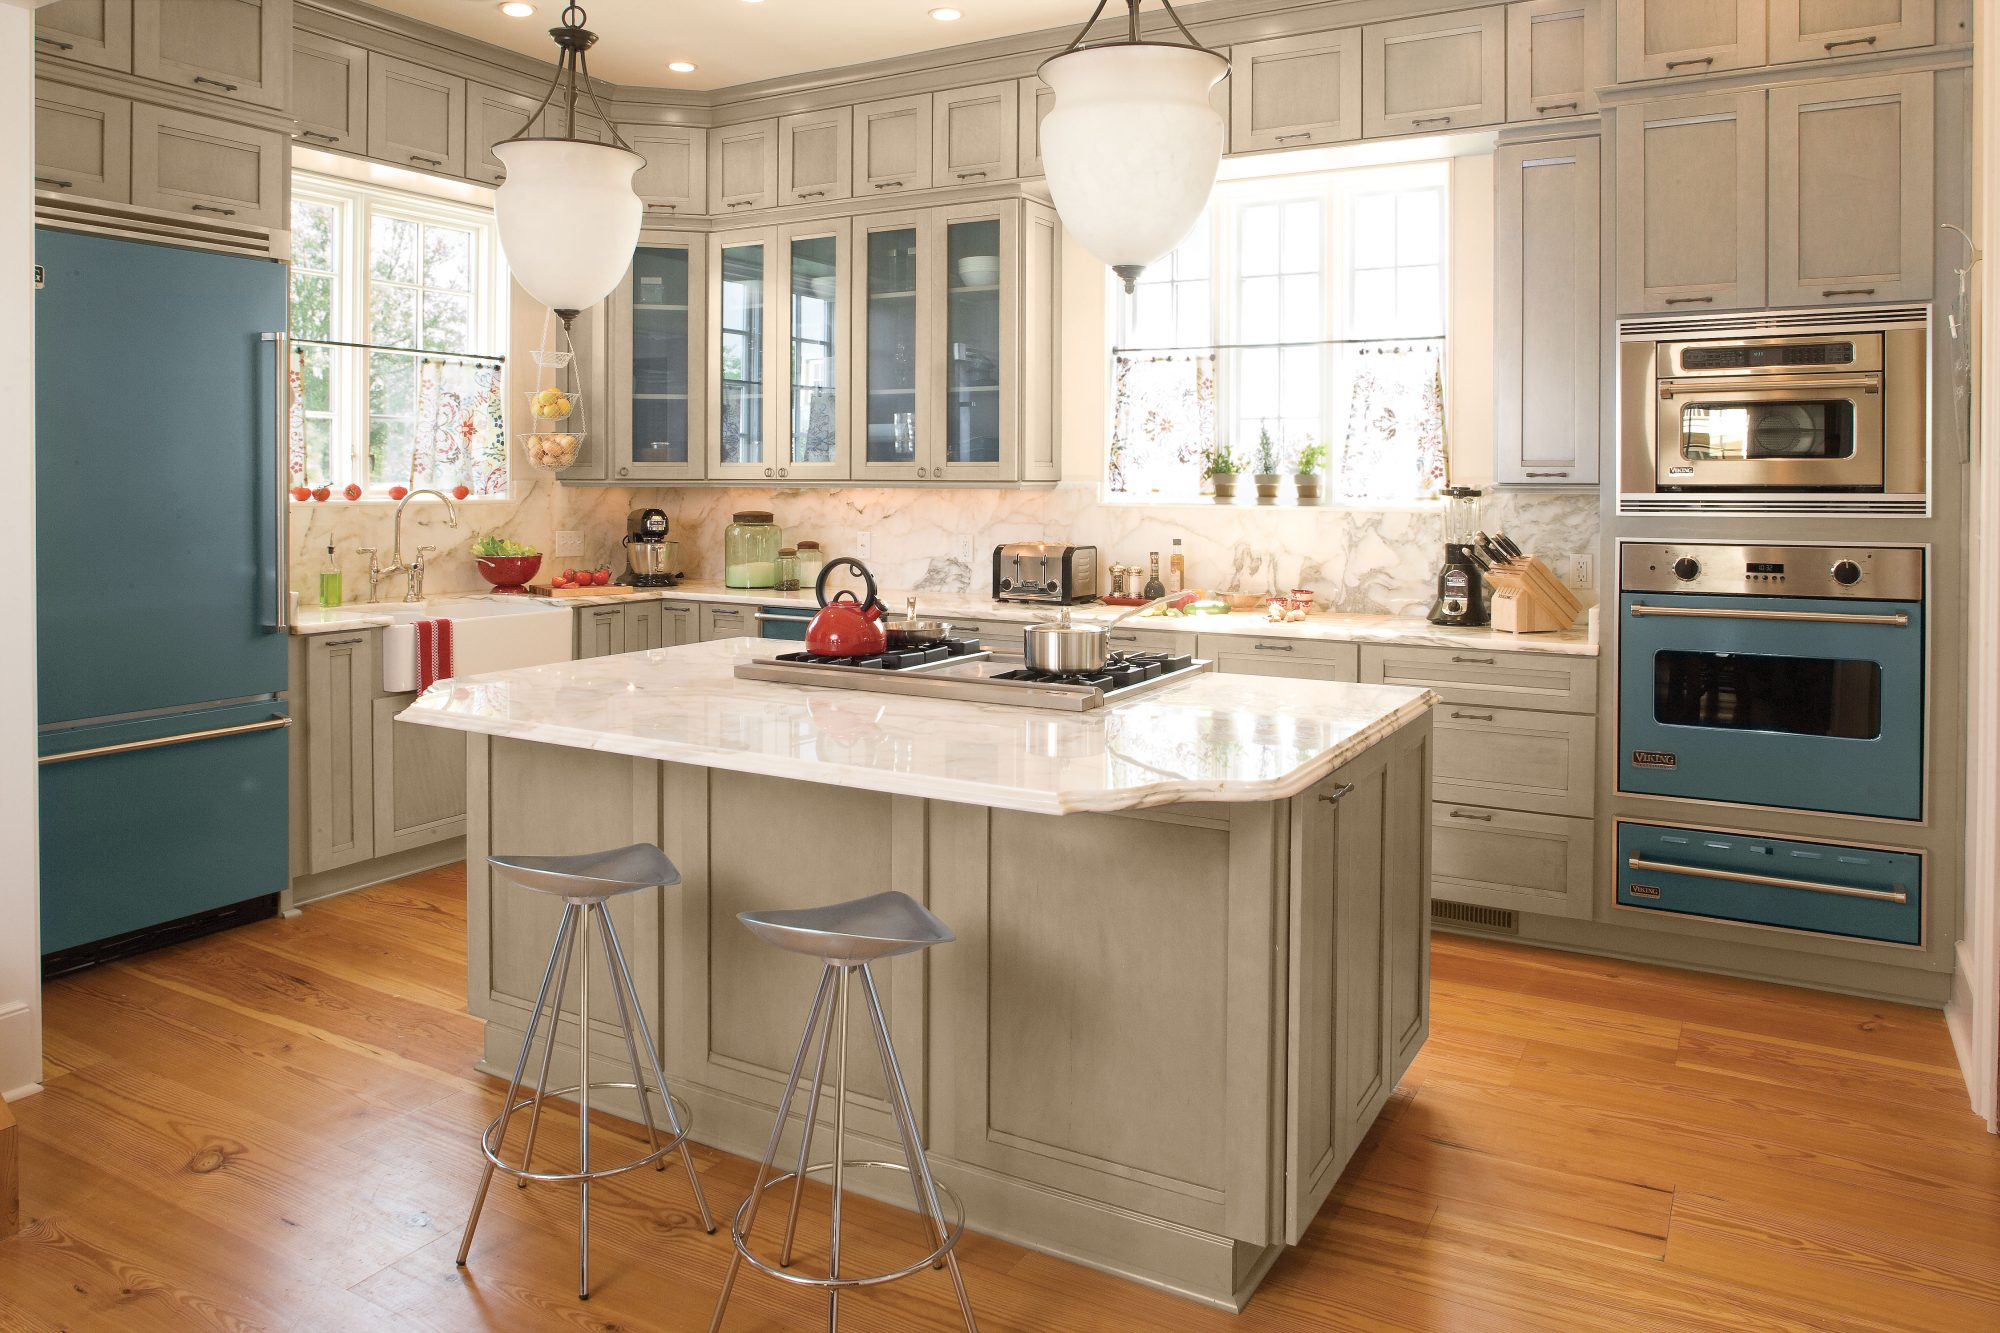 Kitchen Layouts kitchen layouts and essential spaces - southern living